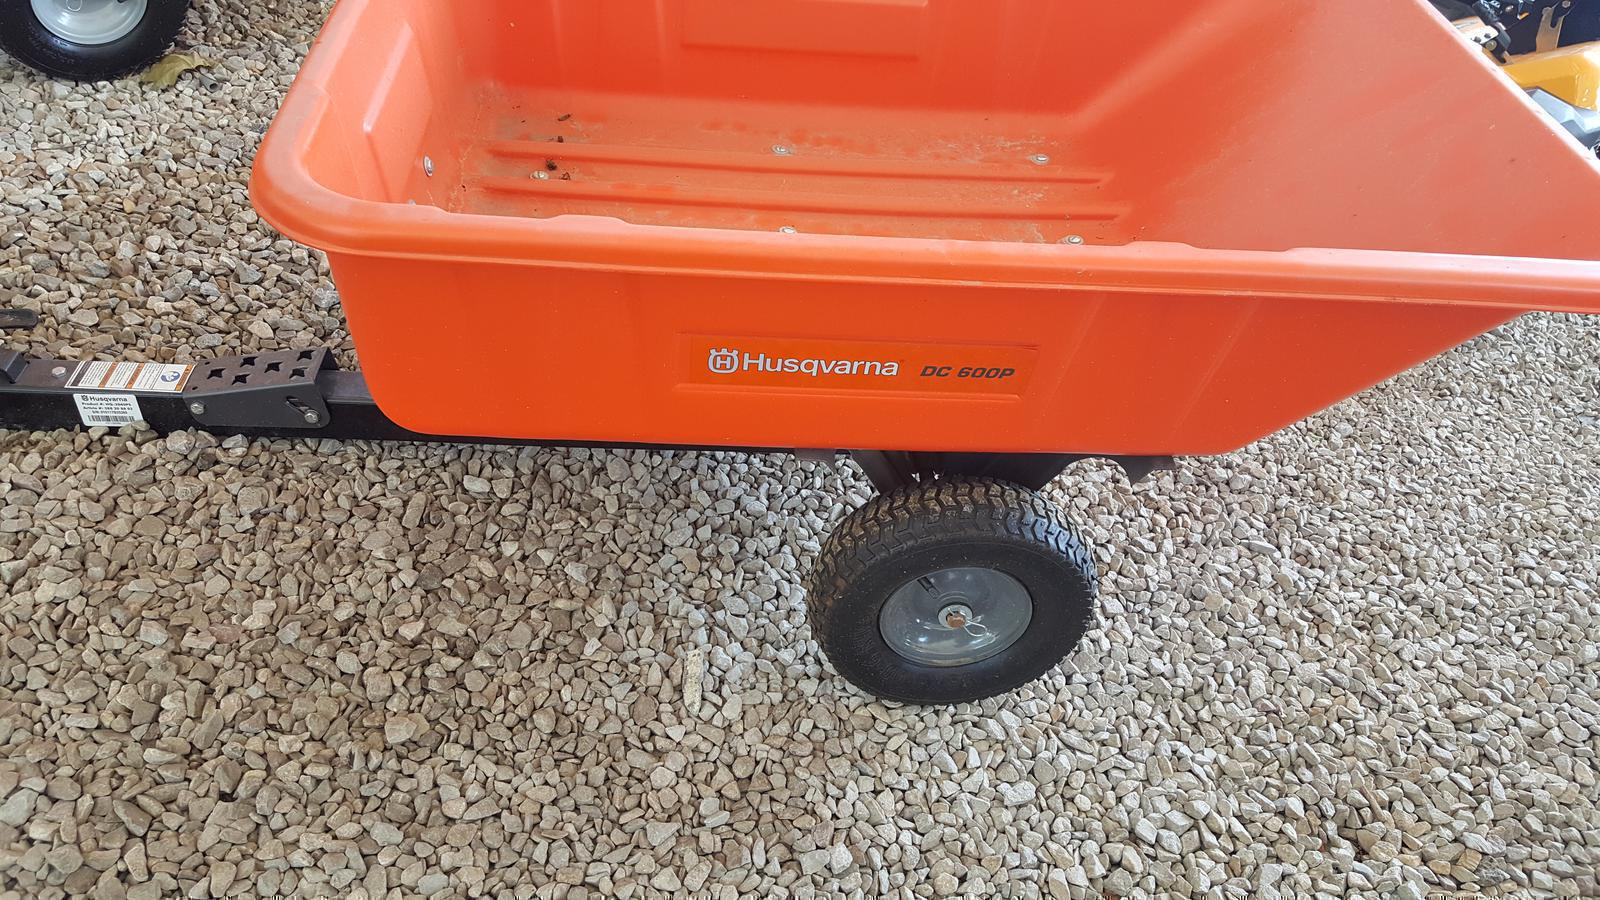 Residential Lawn Mowers, Commercial Lawn Mowers and